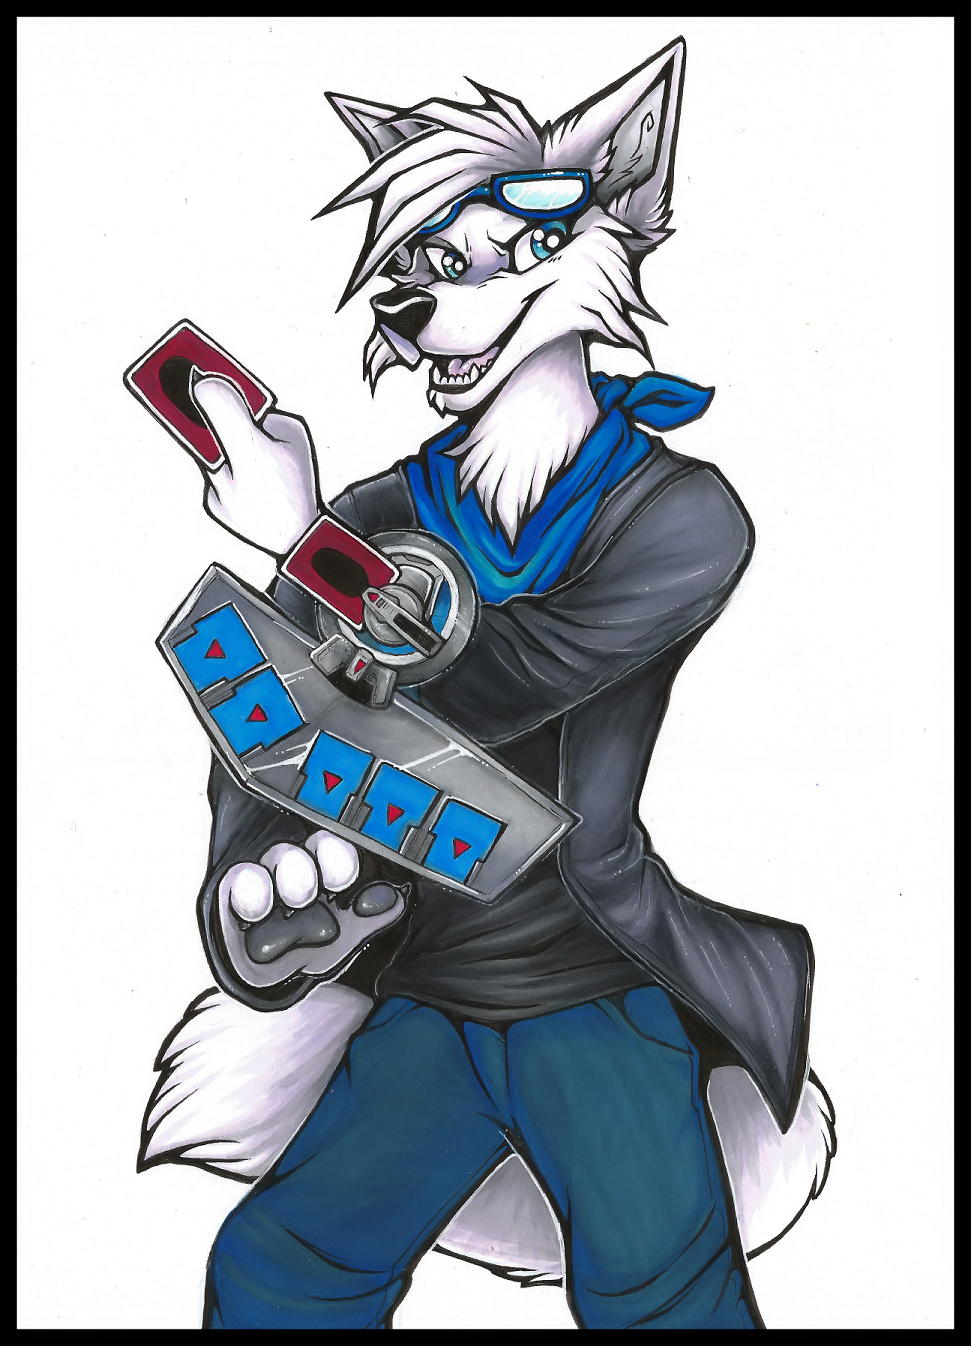 """Aura - """"Heart of the Cards"""" (Commission)"""